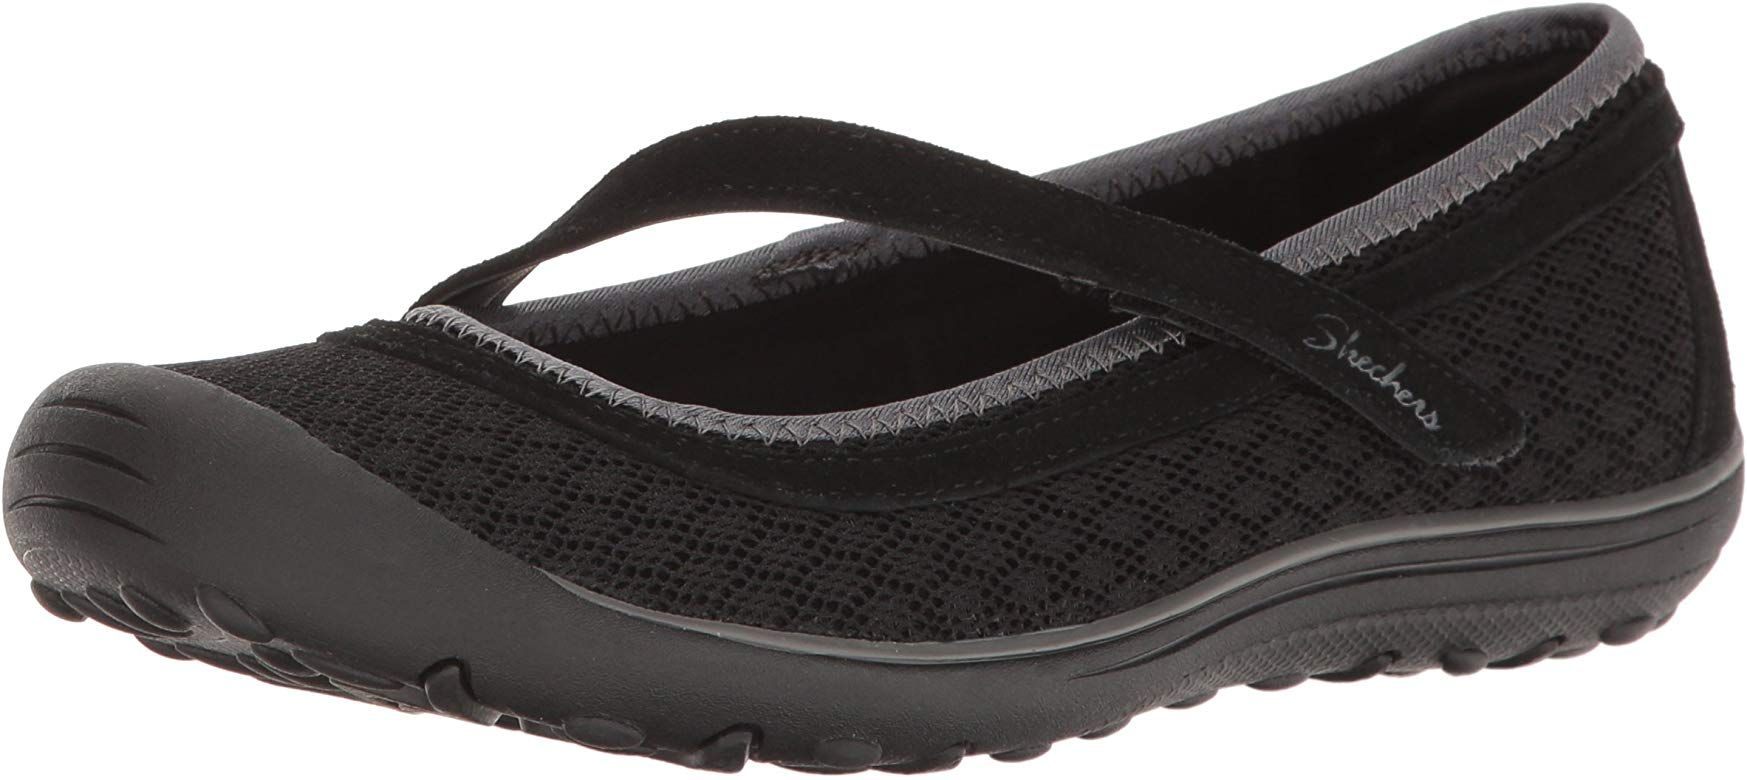 Skechers Bikers Knit Happens  On Shoes Leather Womens Casual Shoes Flat Heel